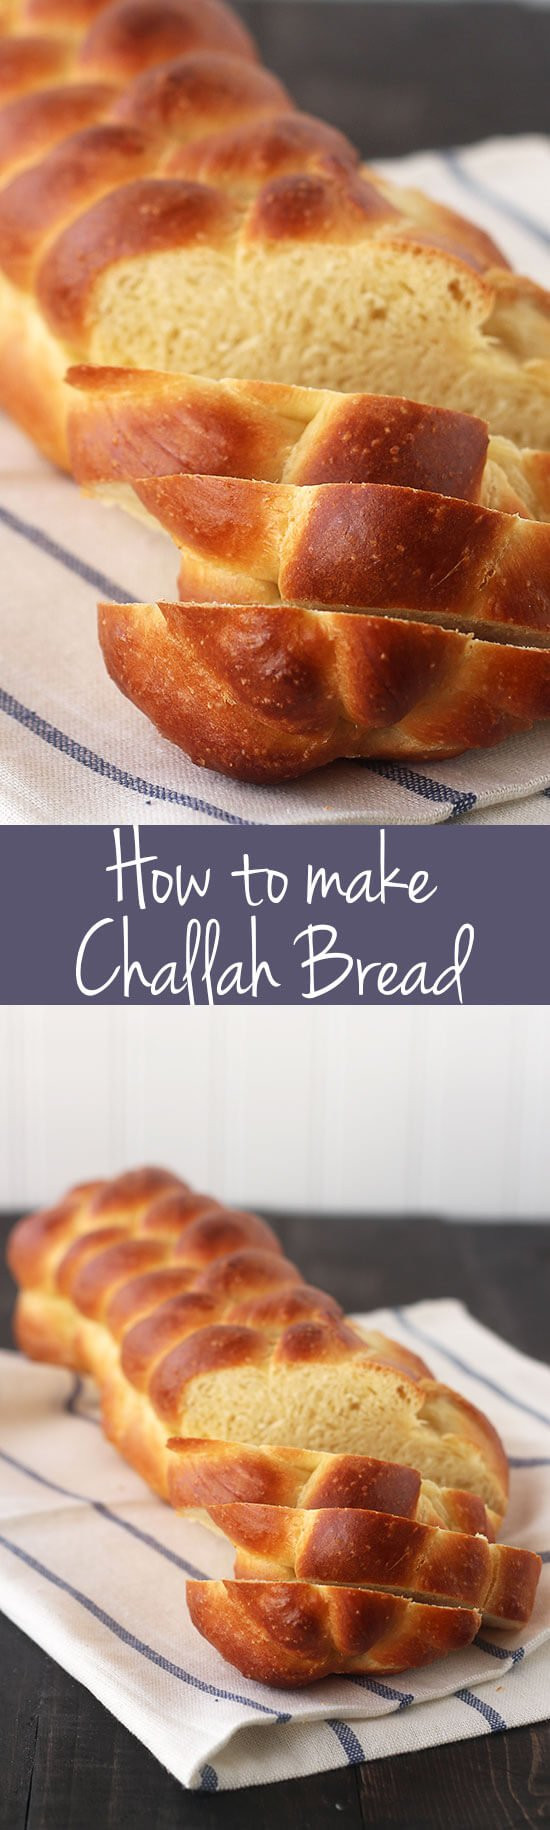 How To Make Challah Bread  How to Make Challah Bread video Handle the Heat